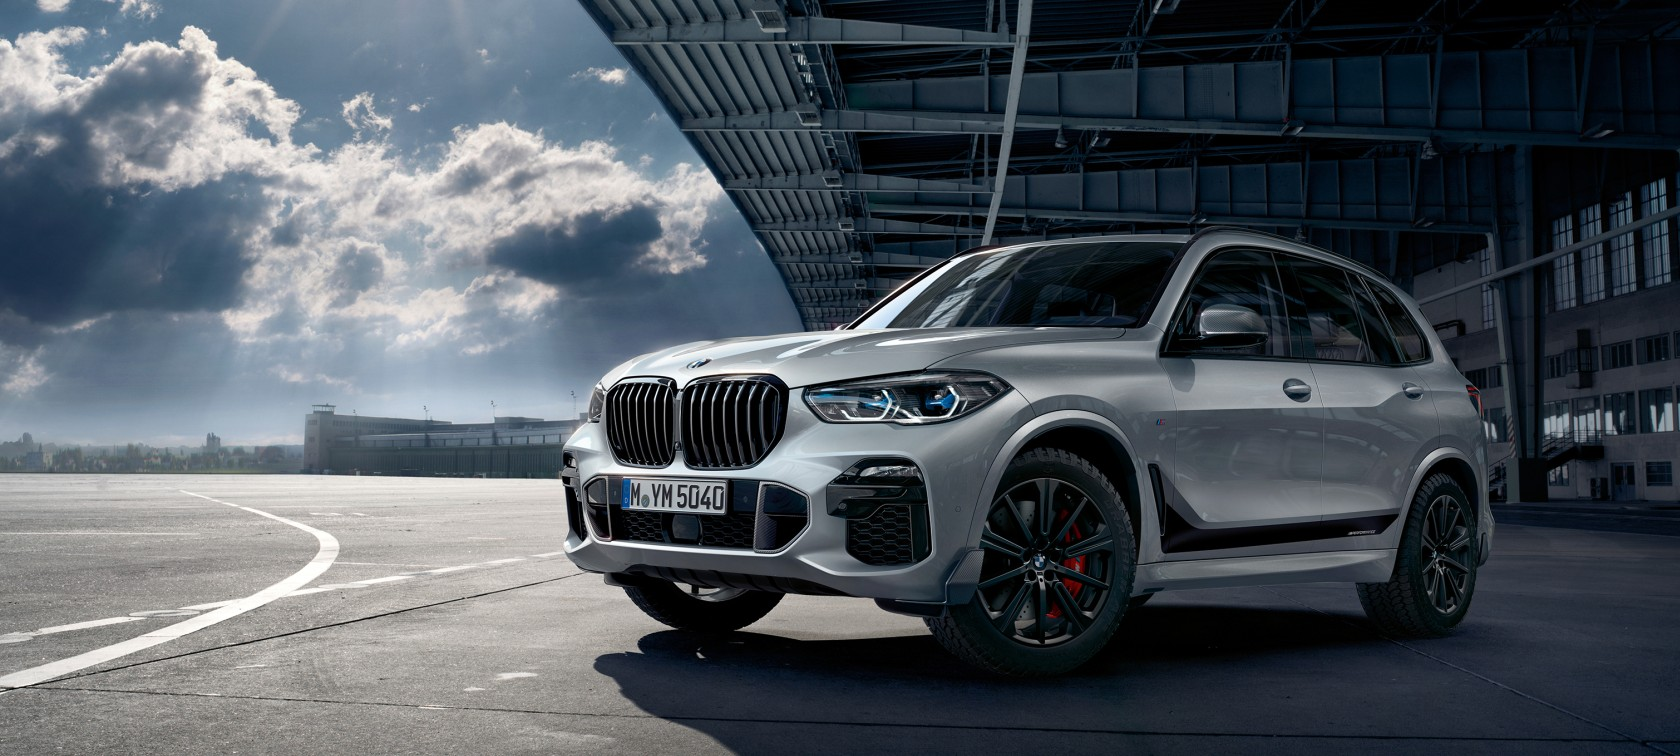 BMW X5 with M Performance Parts